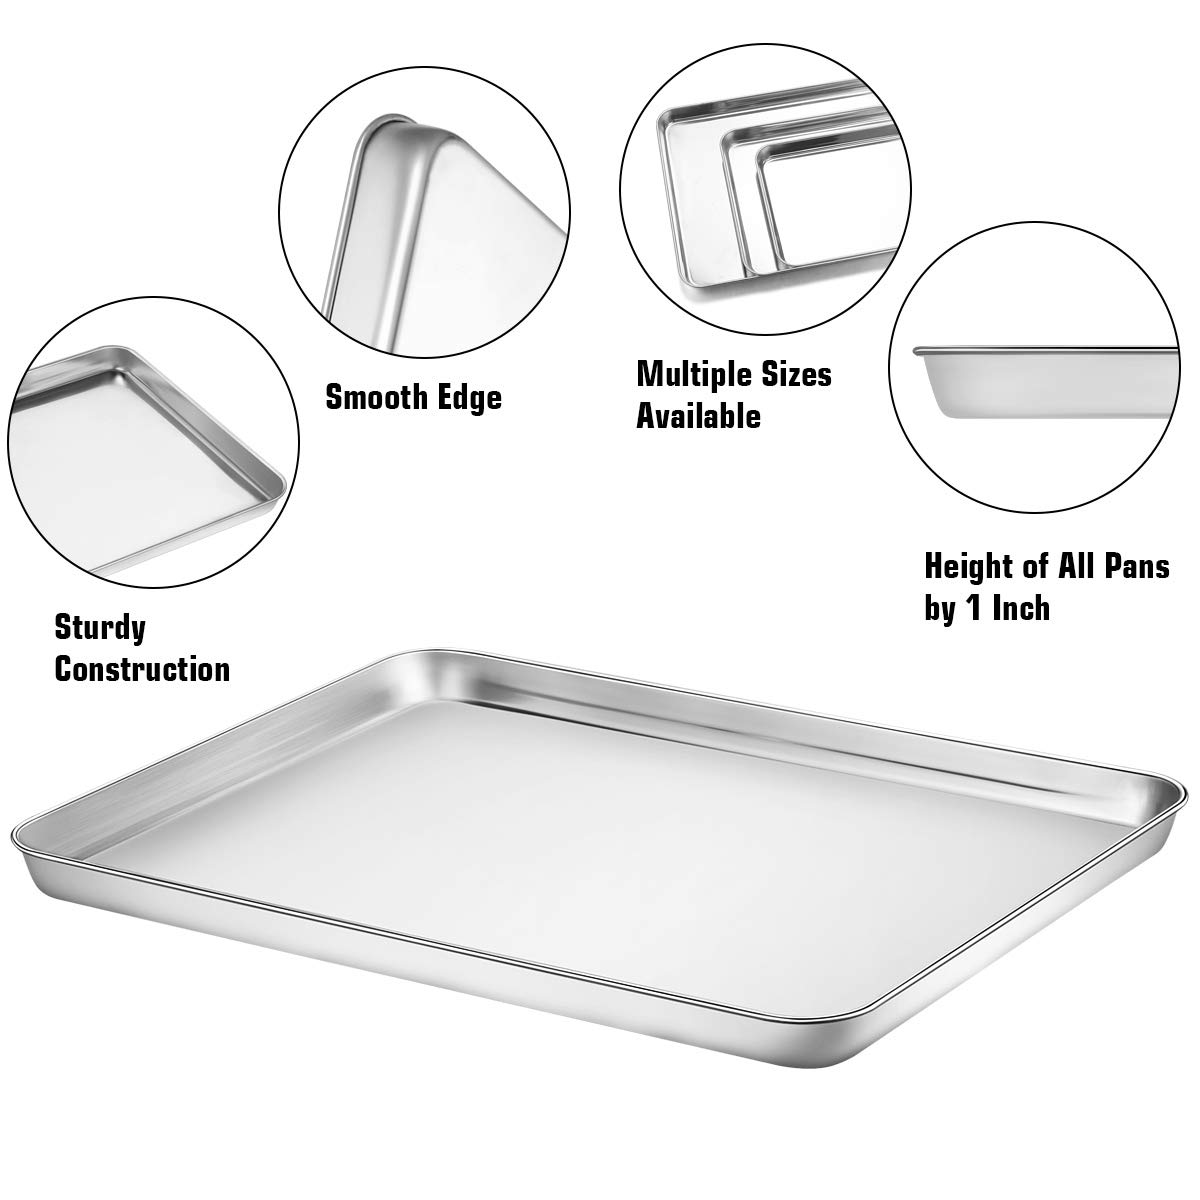 Wildone Baking Sheet with Silicone Mat Set, Set of 6 (3 Sheets + 3 Mats), Stainless Steel Cookie Sheet Baking Pan with Silicone Mat, Non Toxic & Heavy Duty & Easy Clean by Wildone (Image #2)